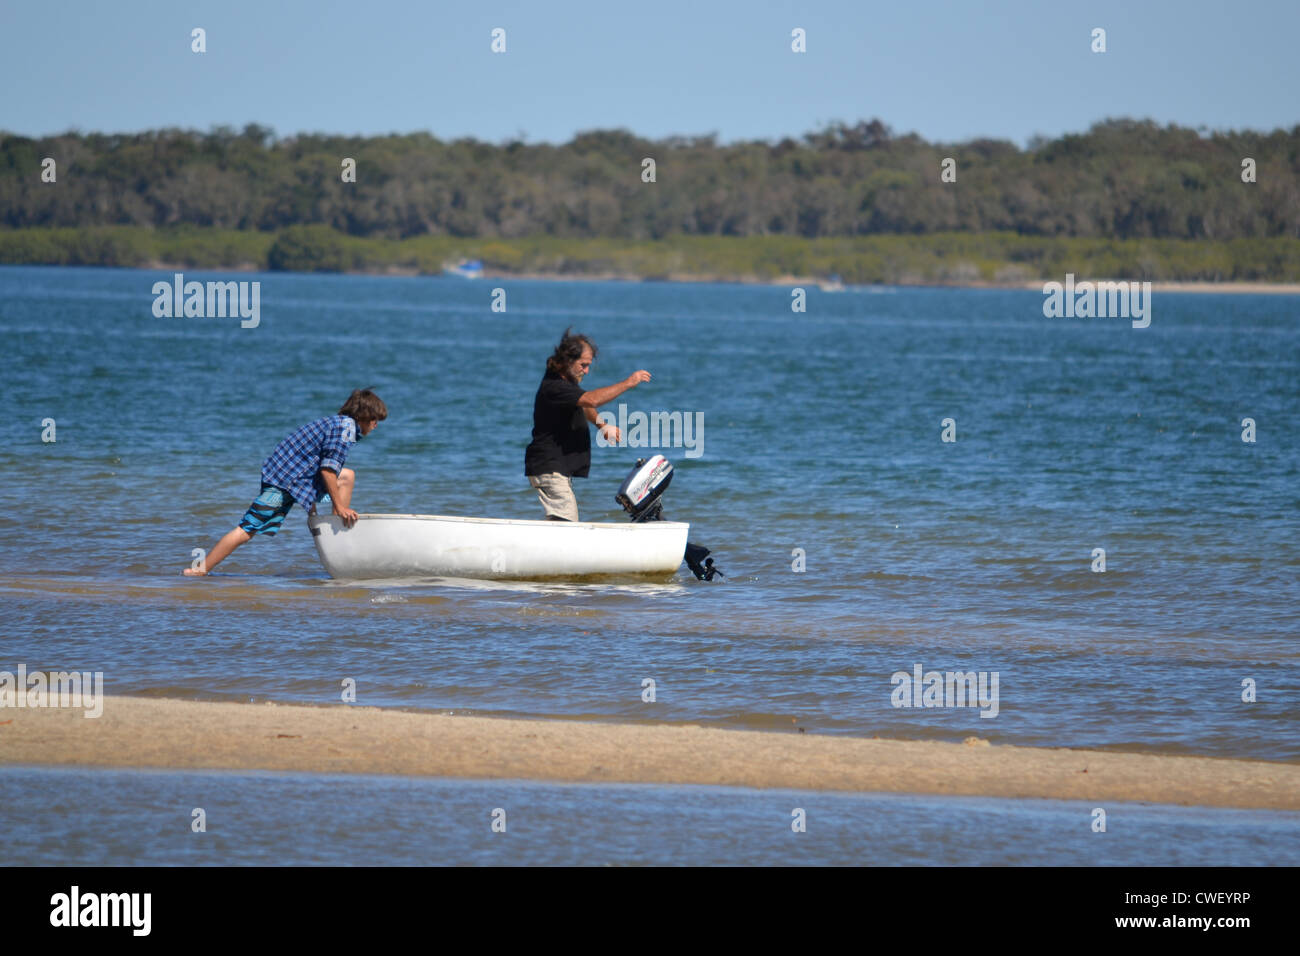 father and son go for ride in small boat - Stock Image